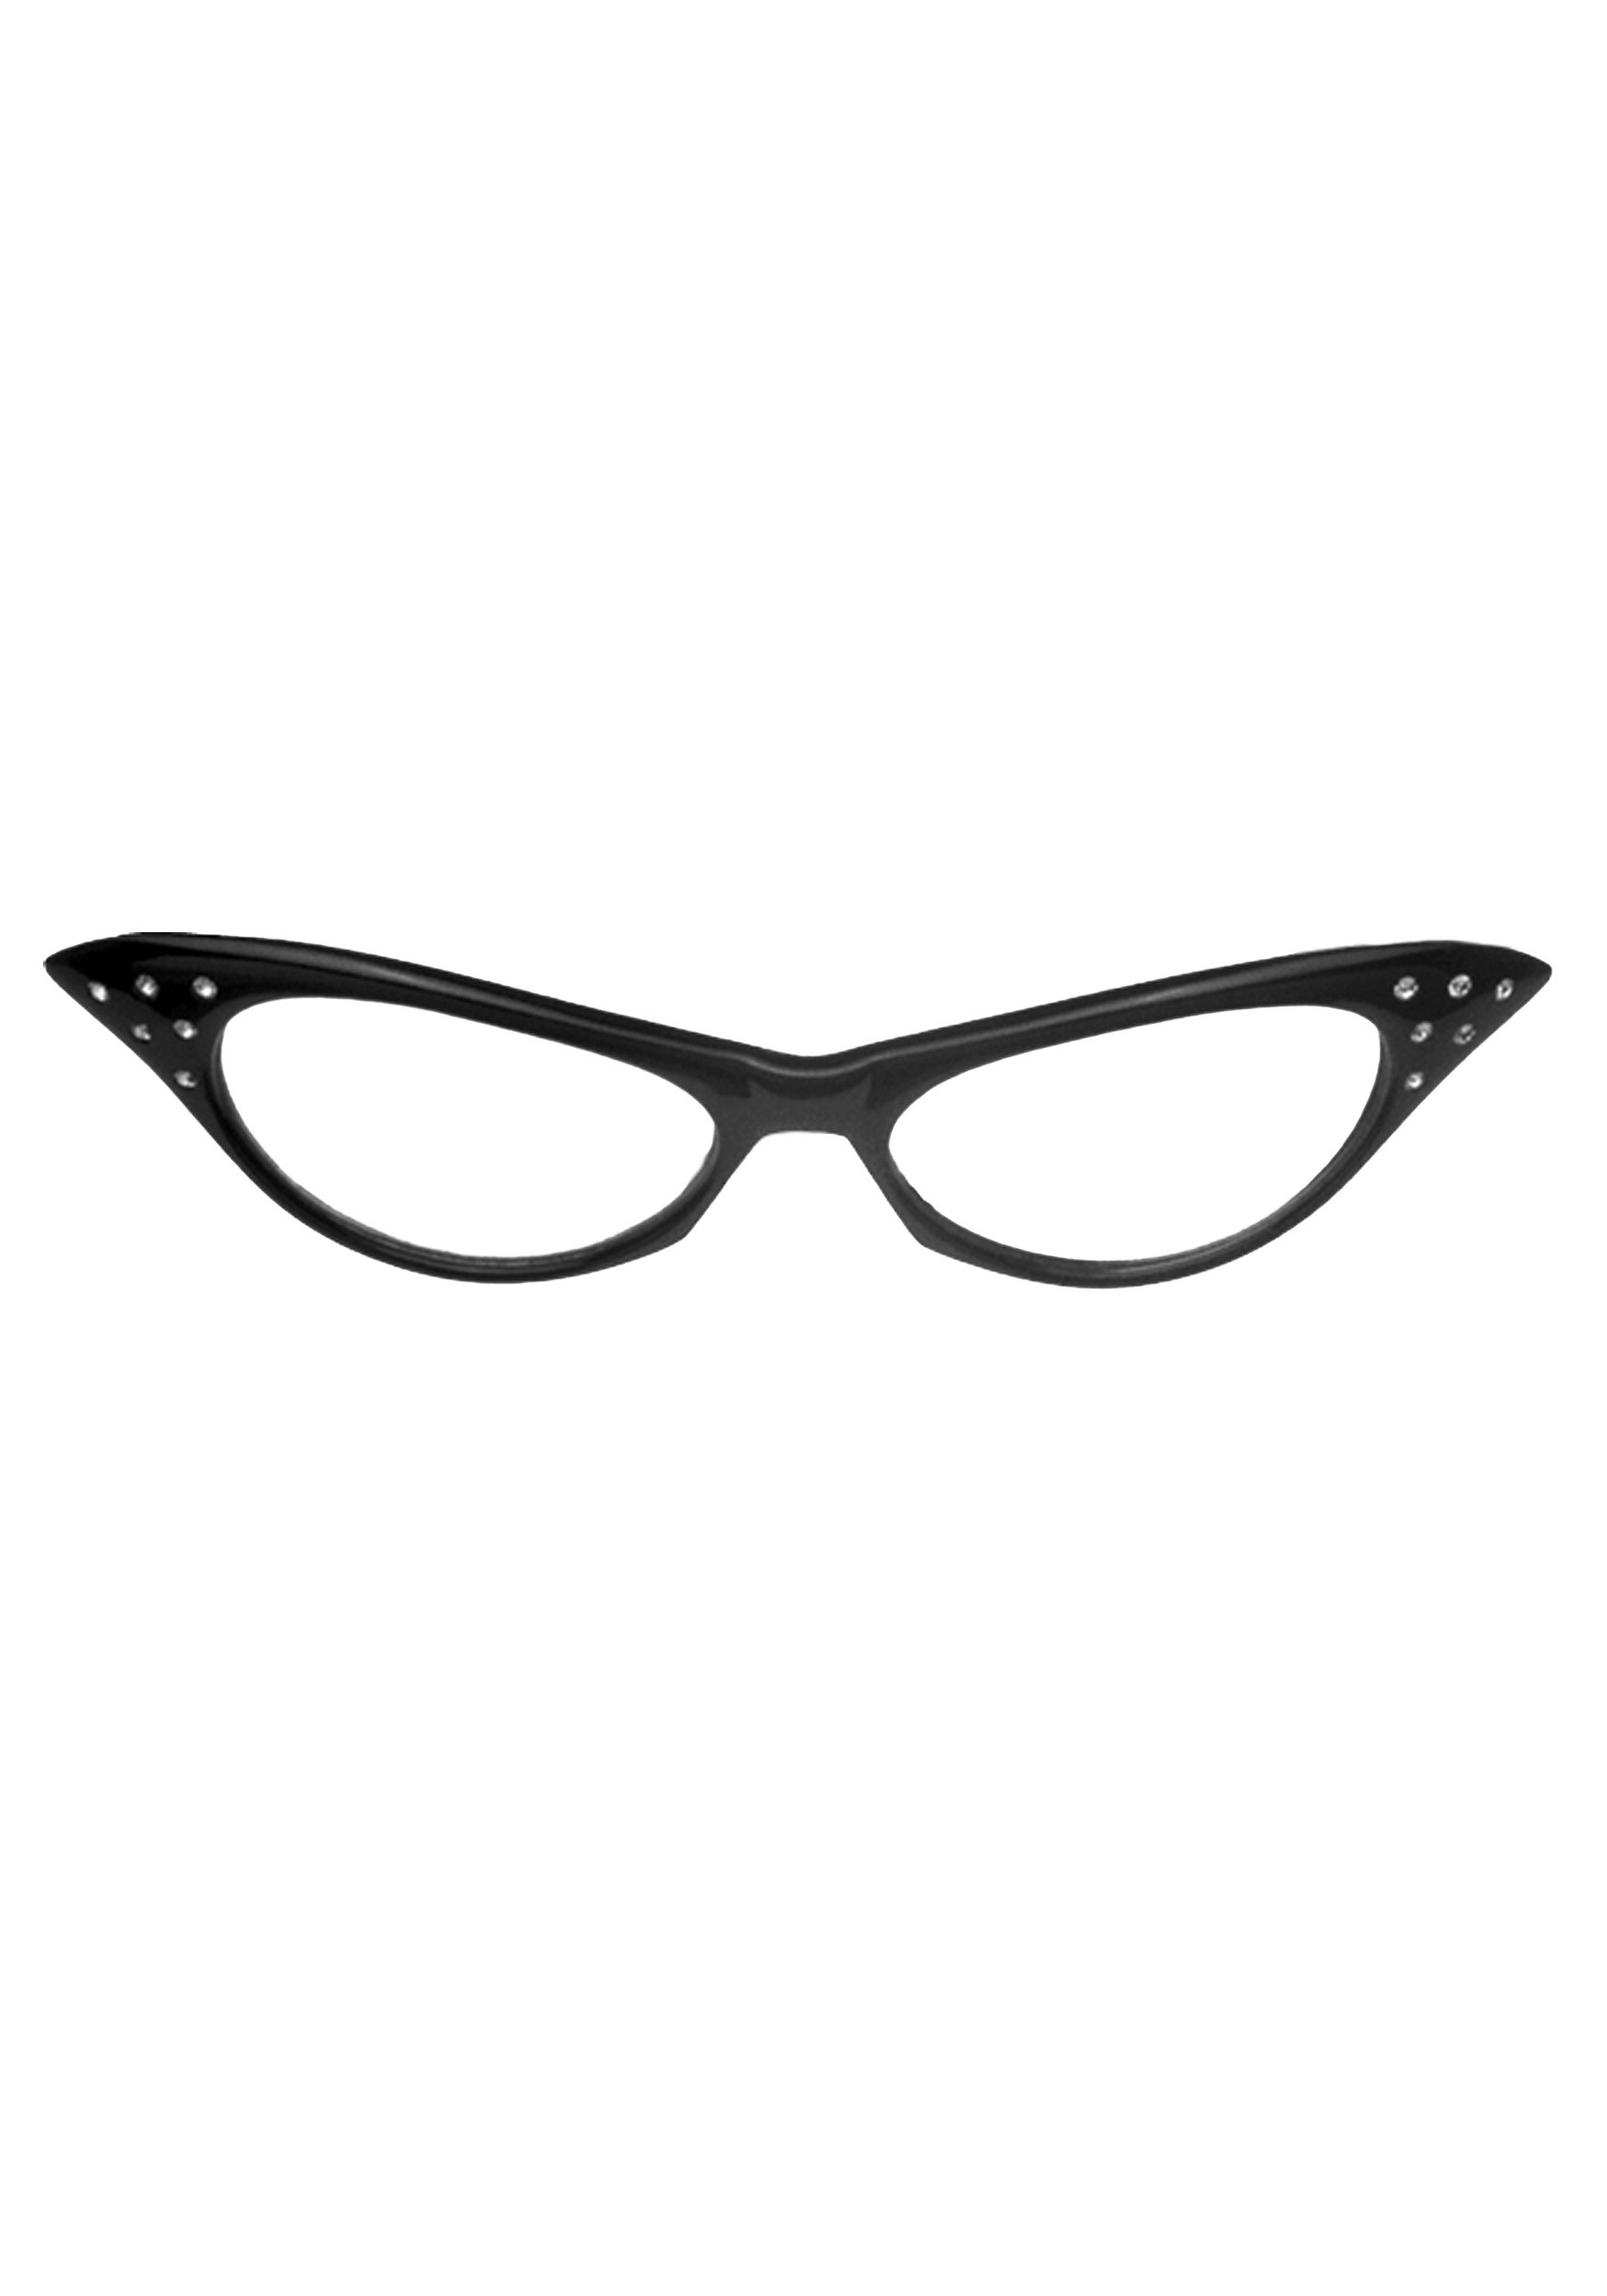 Are Black Frame Glasses Cool : 50s Black Frame Glasses